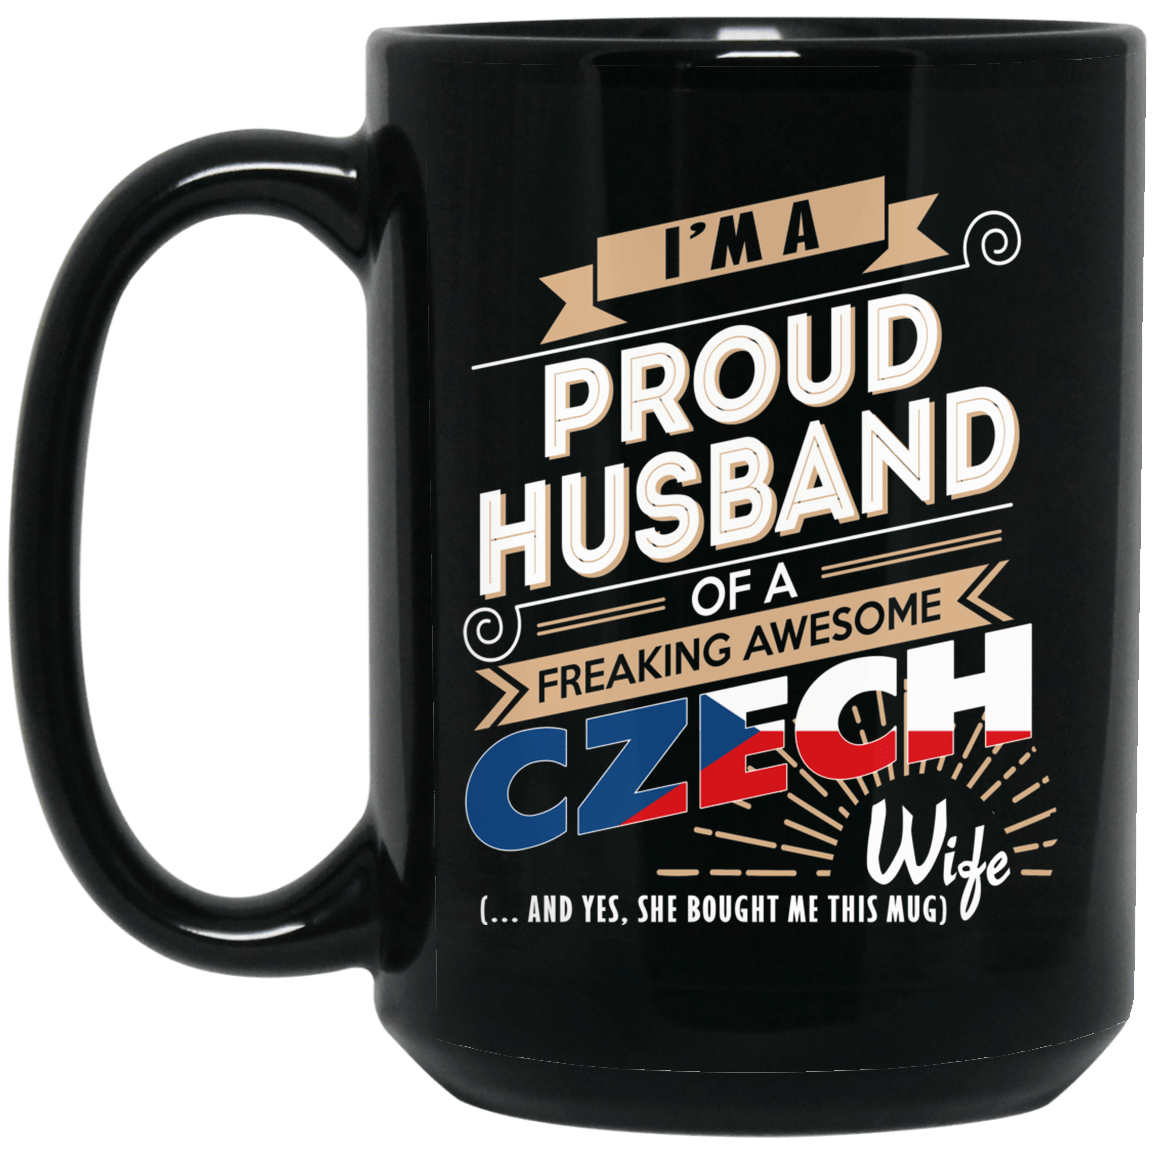 Proud Husband Of A Freaking Awesome Czech Wife Mug 1066-10182-72136596-49311 - Tee Ript